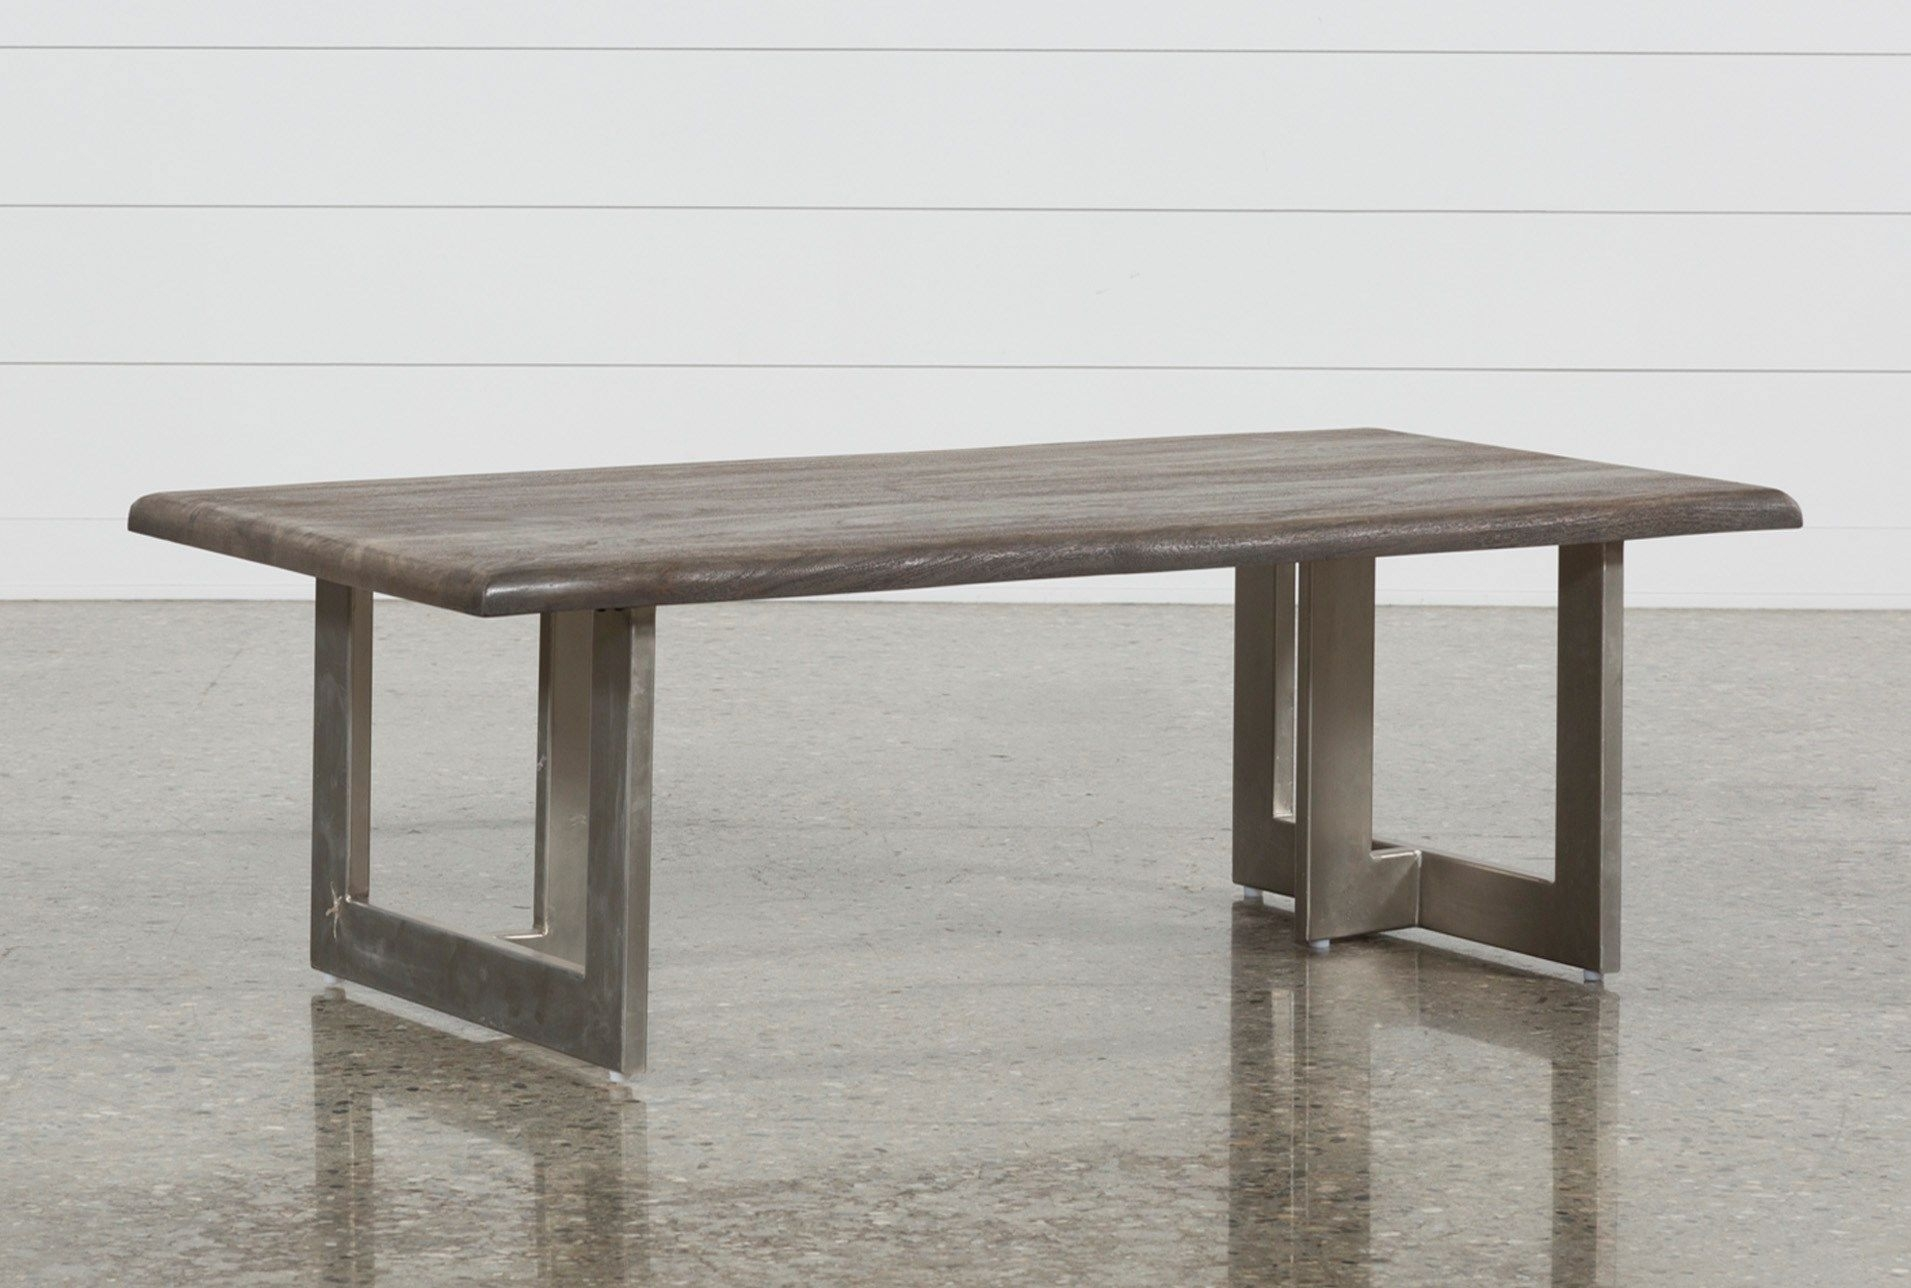 Portland Cocktail Table | Rr 2C (Industrial) | Pinterest Inside Best And Newest Candice Ii Extension Rectangle Dining Tables (Image 18 of 20)